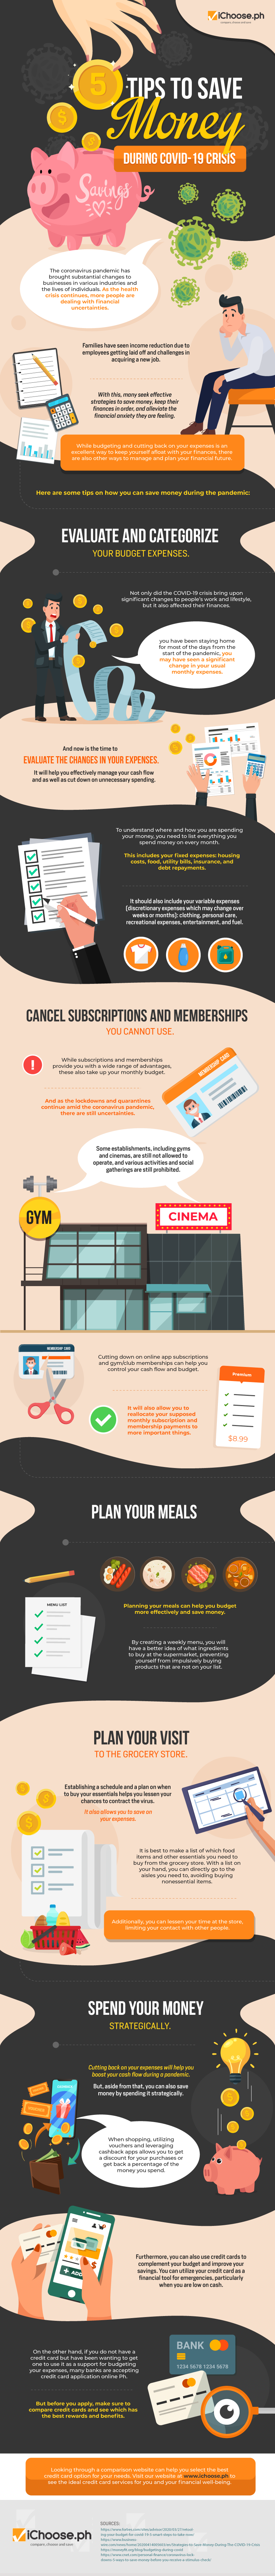 5-Tips-to-Save-Money-During-COVID-19-Crisis-Infographic